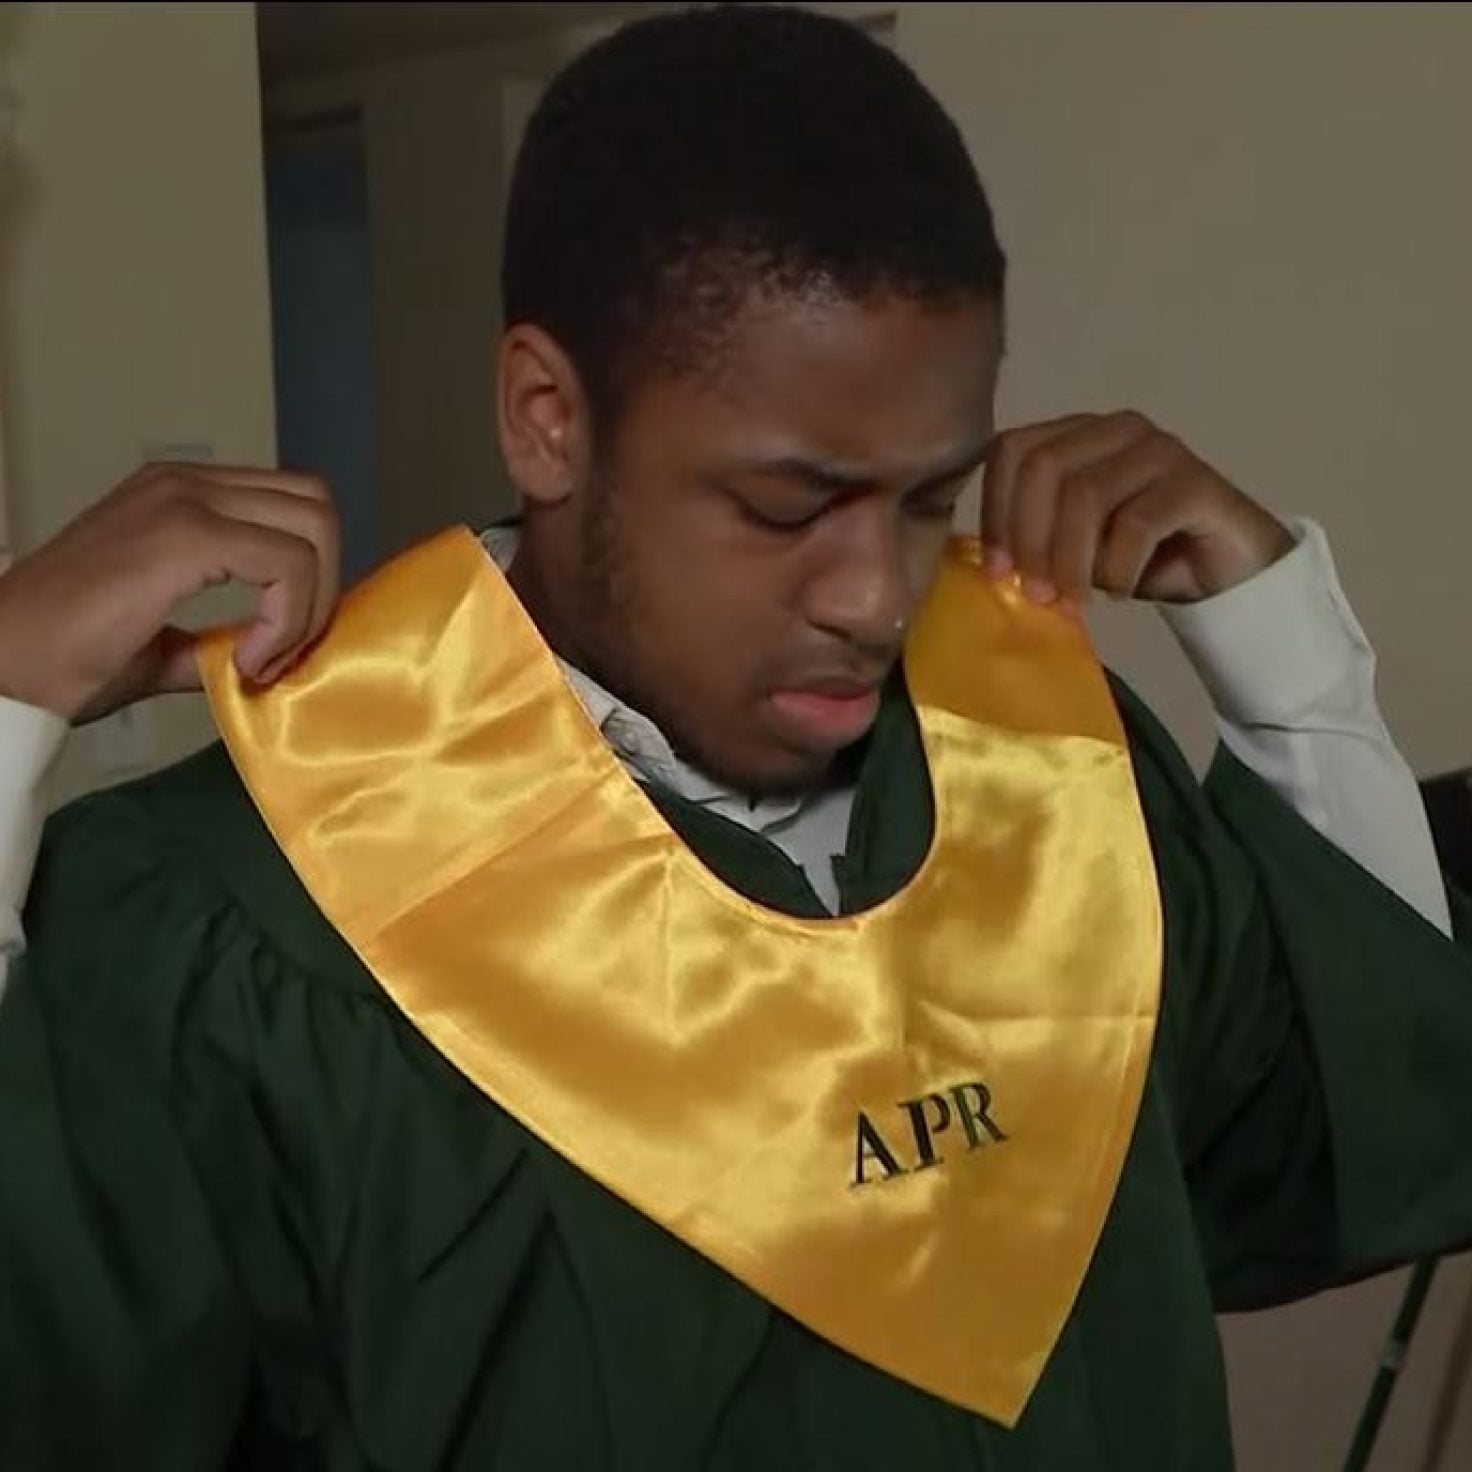 Jacksonville Teen Becomes Class Valedictorian Despite Experiencing Homelessness